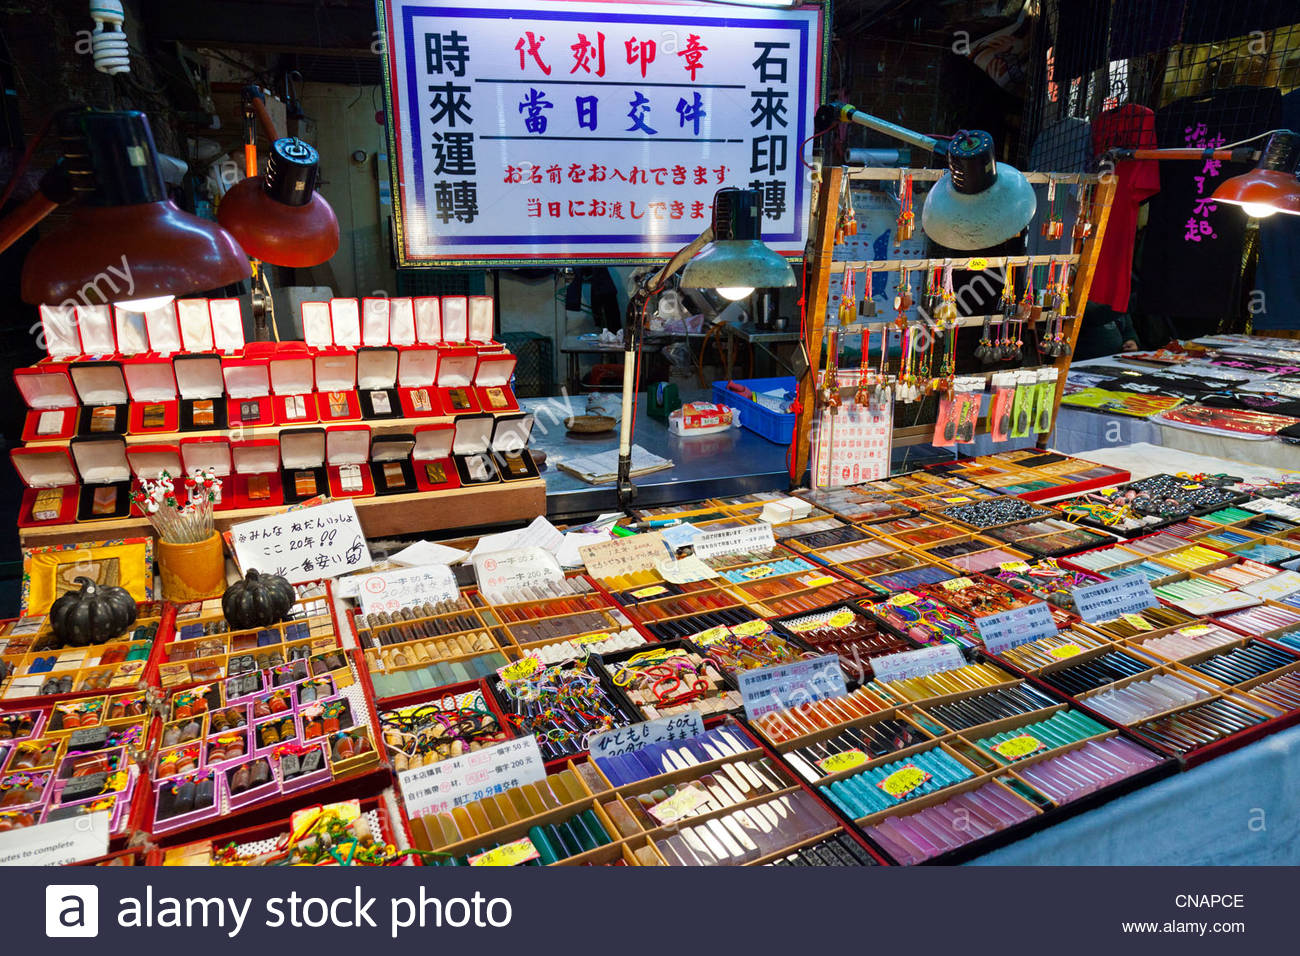 Shilin Night Market shops [Source: Alamy stock photo]